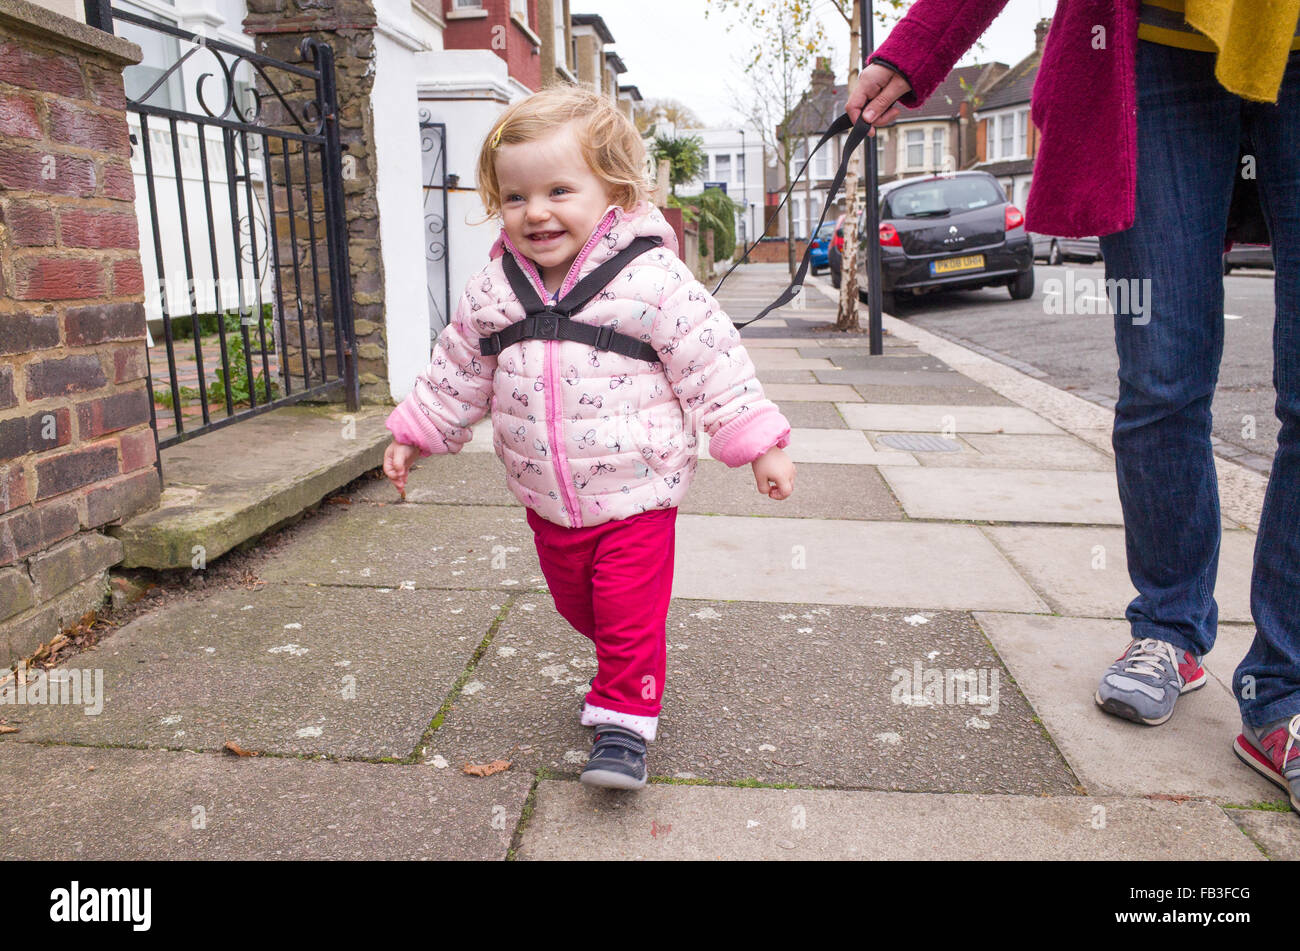 Toddler walking down the street held with a safety harness, London, UK - Stock Image